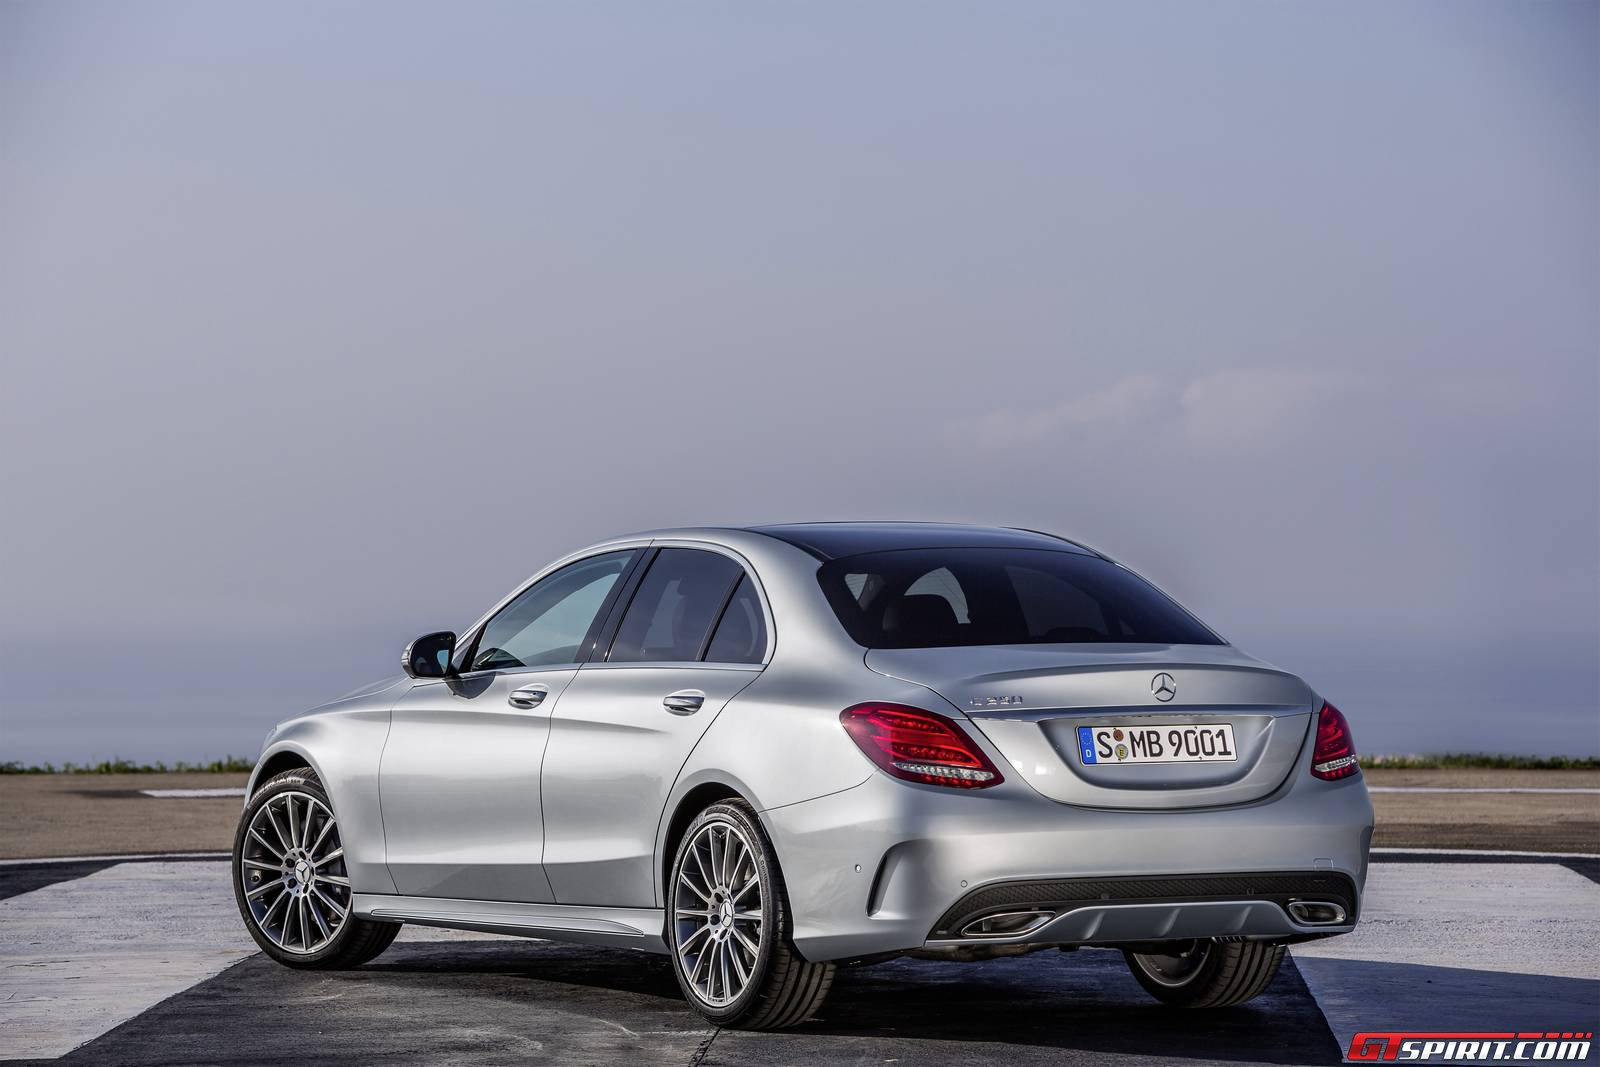 2014 mercedes benz c class engine details revealed gtspirit for Mercedes benz 2014